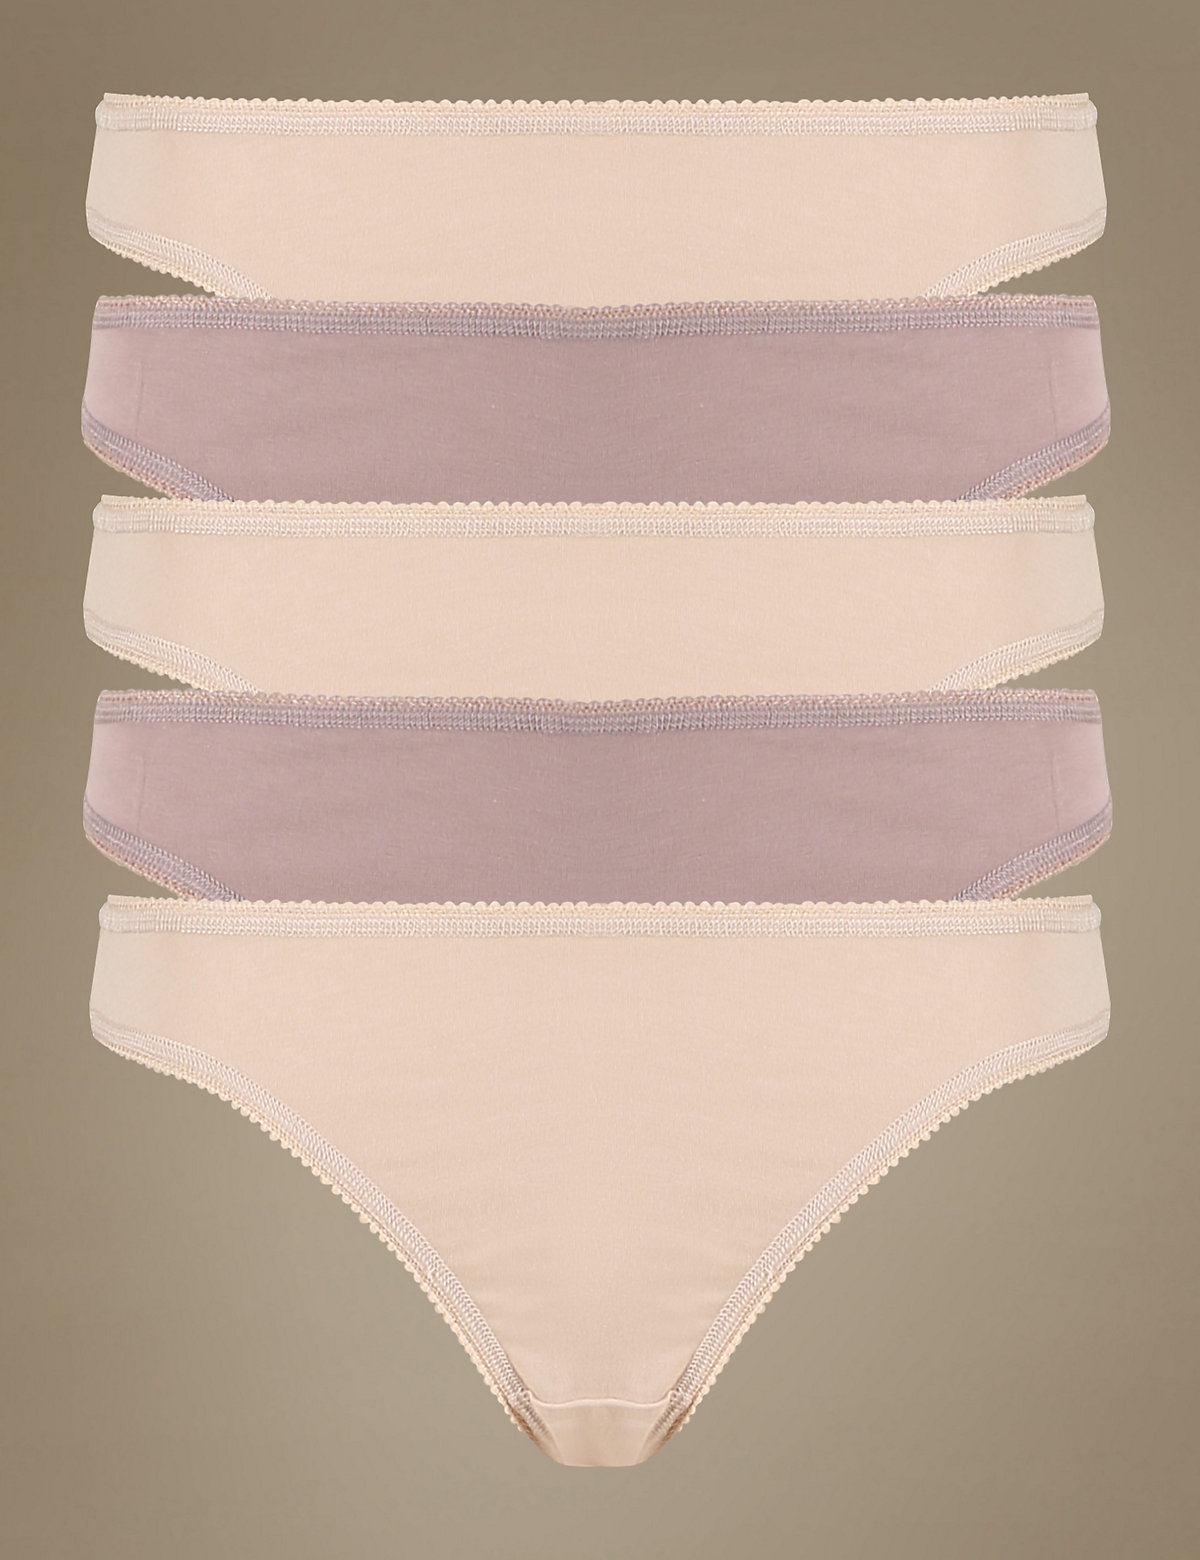 M&s Collection 5 Pack Cotton Rich Assorted Low Rise Thongs